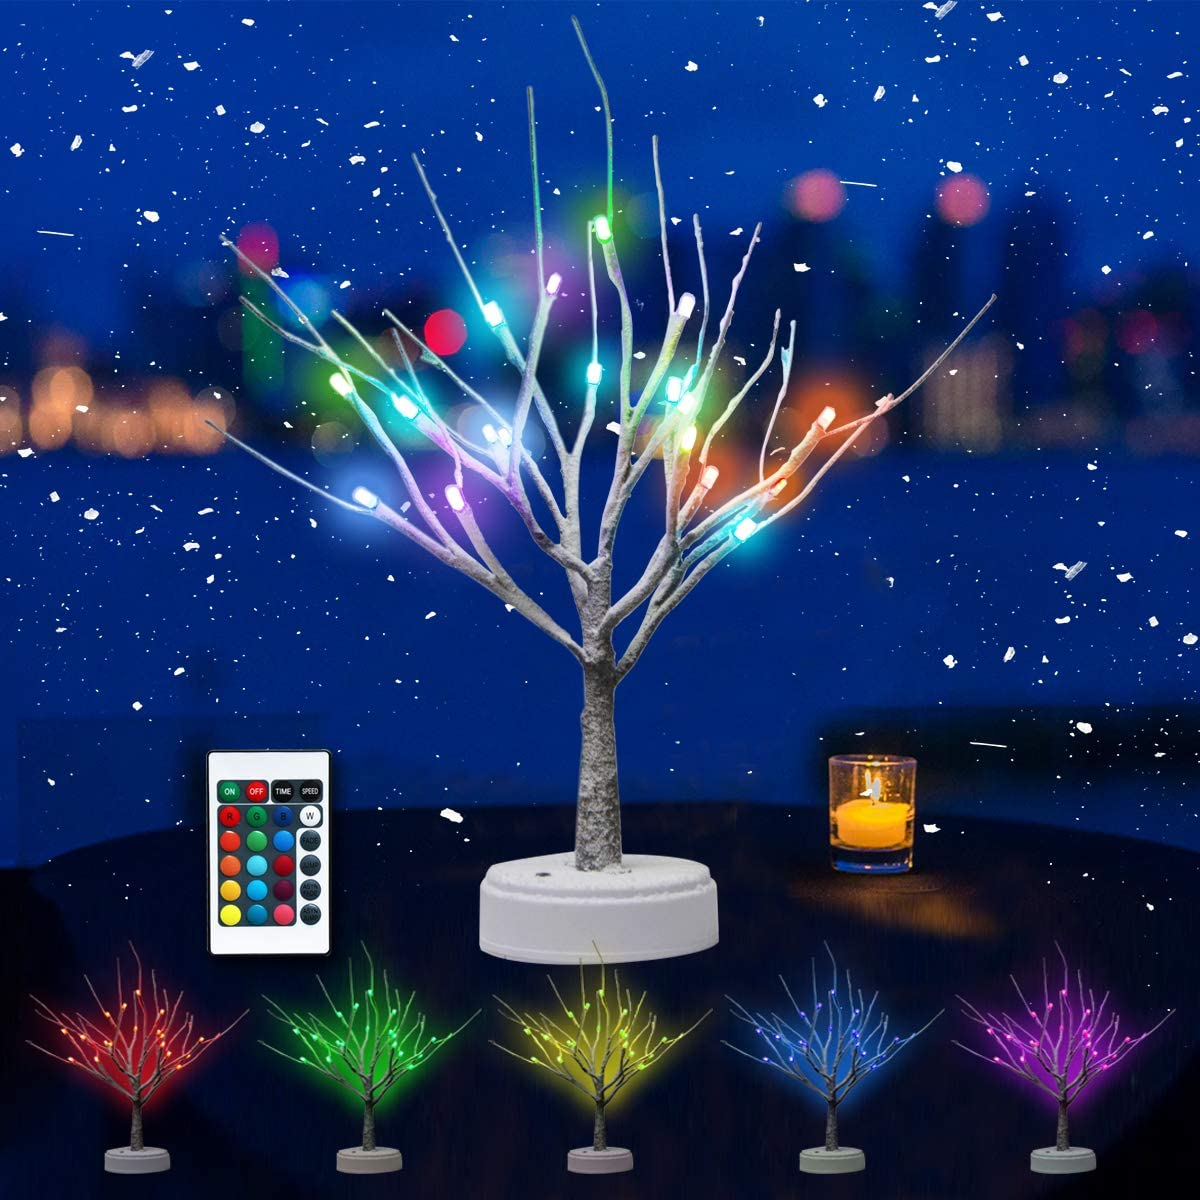 Oycbuzo 18 LED Color Changing Lighted Snow Tree Light-RGB with Remote Control, Light Up Christmas Tabletop Bonsai Tree Decorations, Holiday Decor Tree, Table Lamp for Room, Party, Wedding